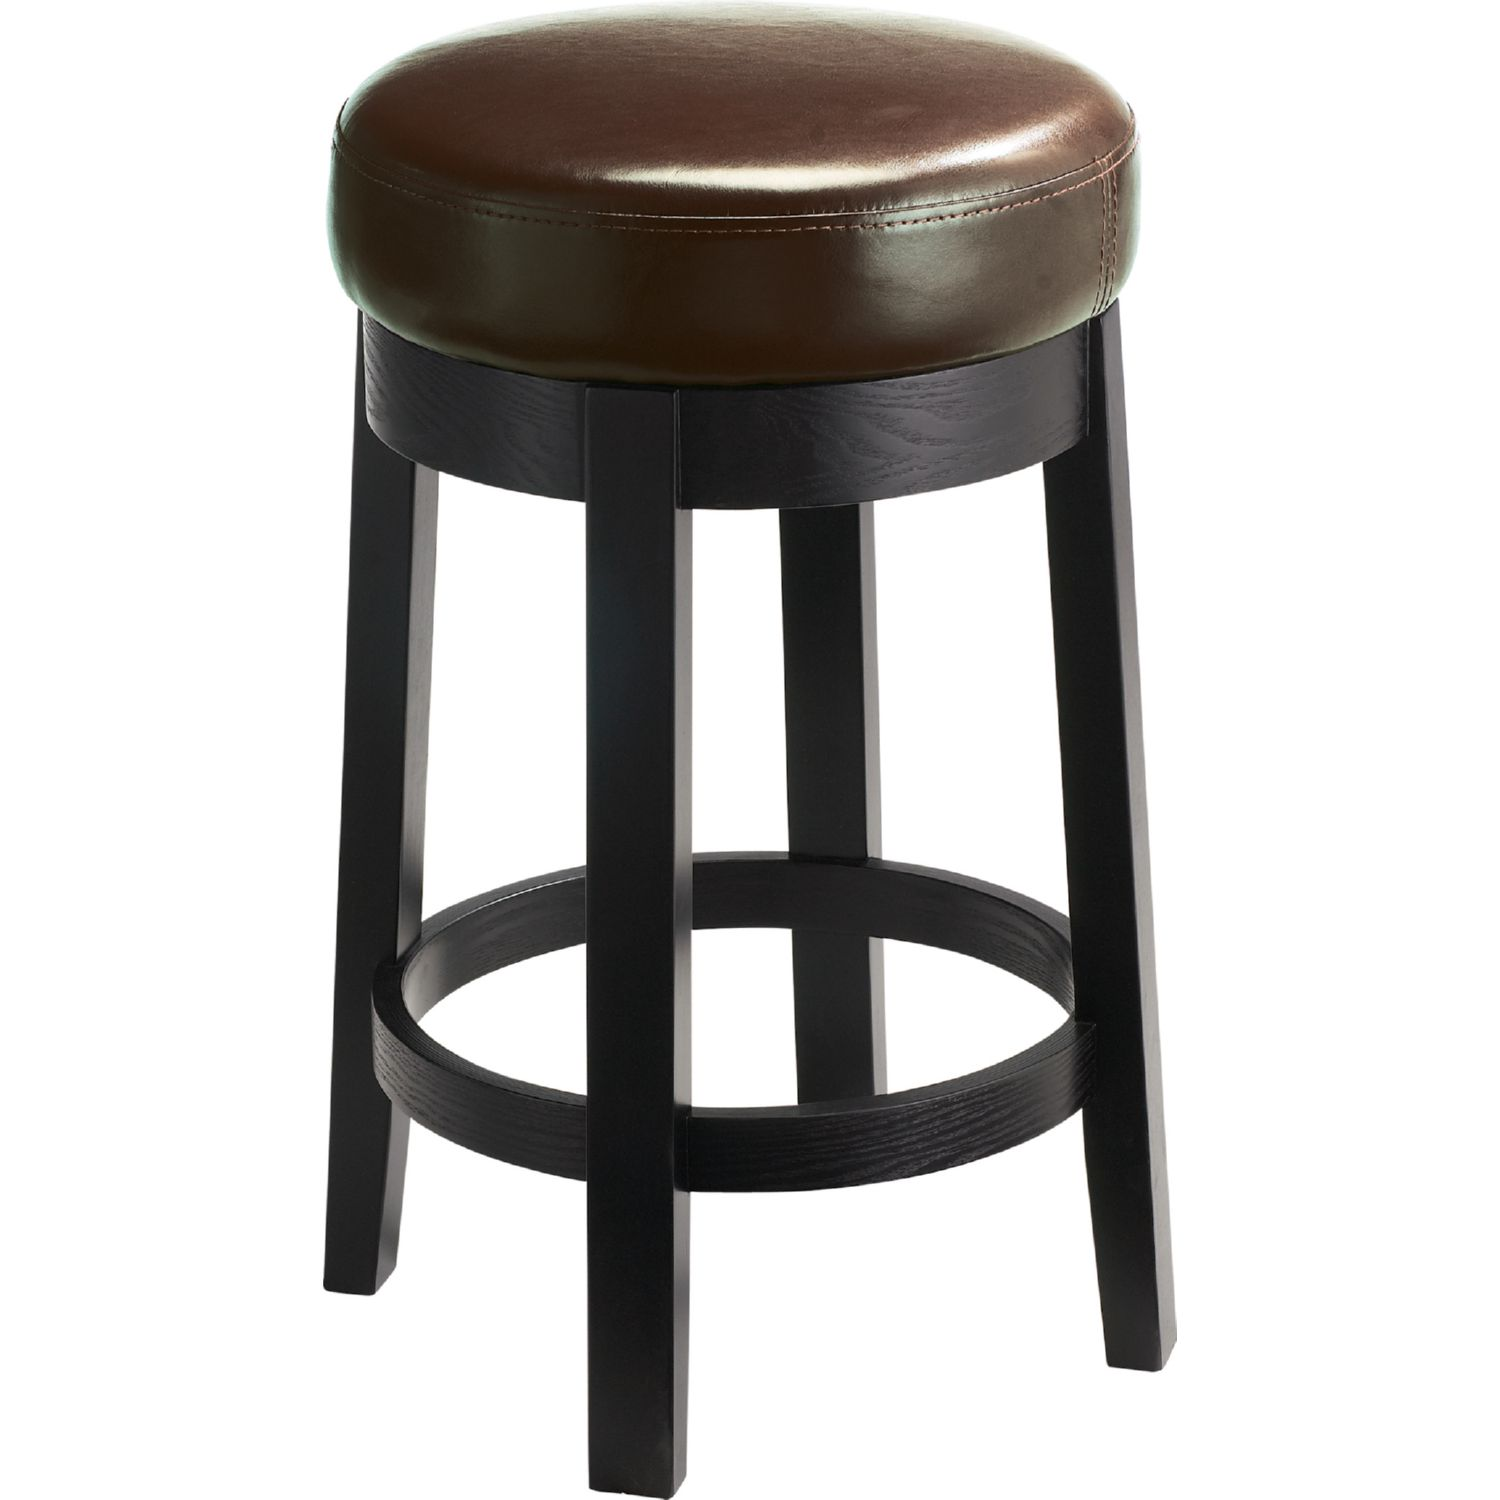 Sunpan 44921 Cedric Swivel Counter Height Stool In Brown